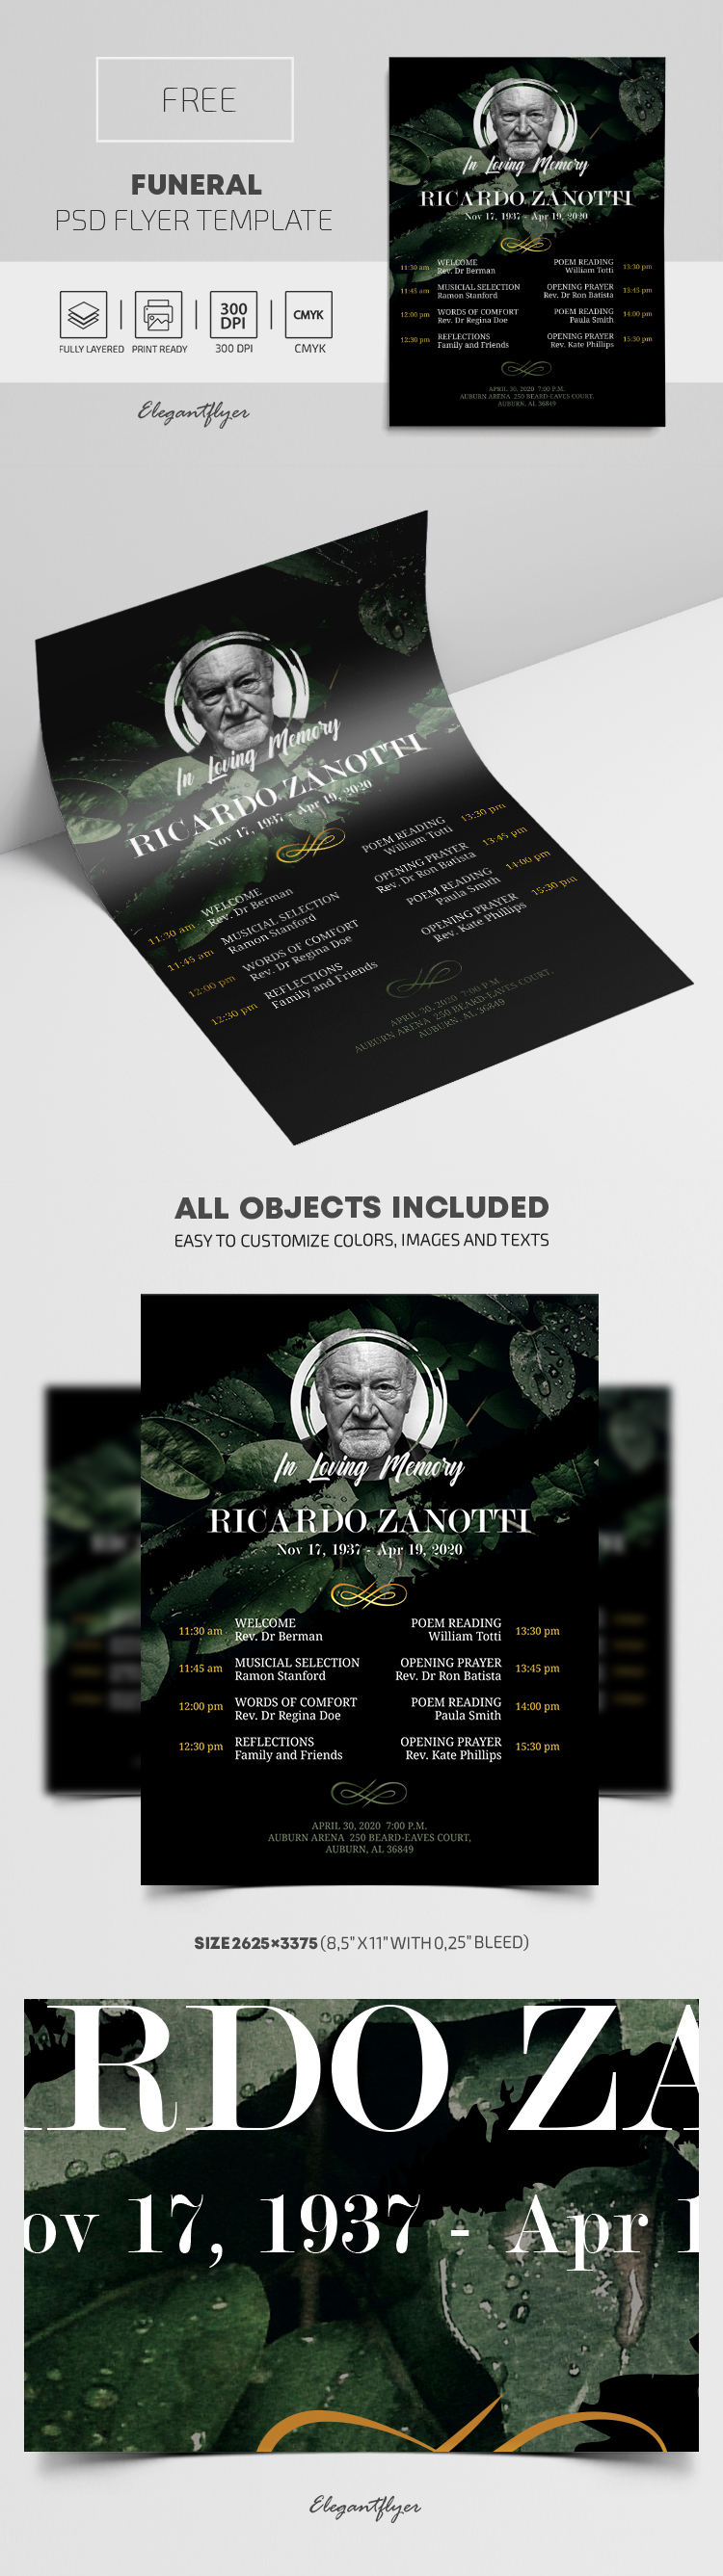 Funeral – Free PSD Flyer Template